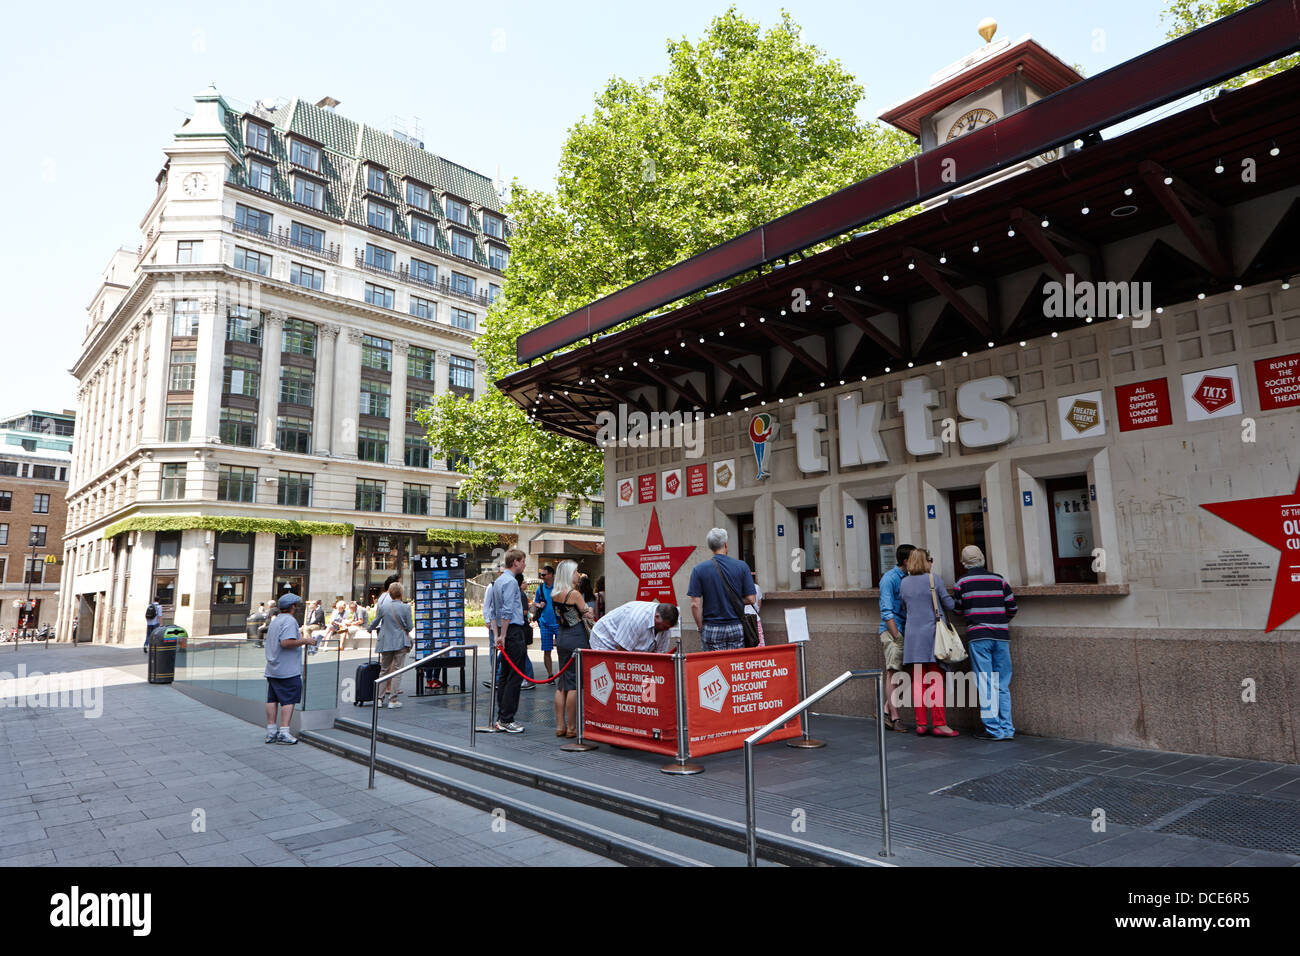 tkts tickets booth Leicester Square London England UK - Stock Image